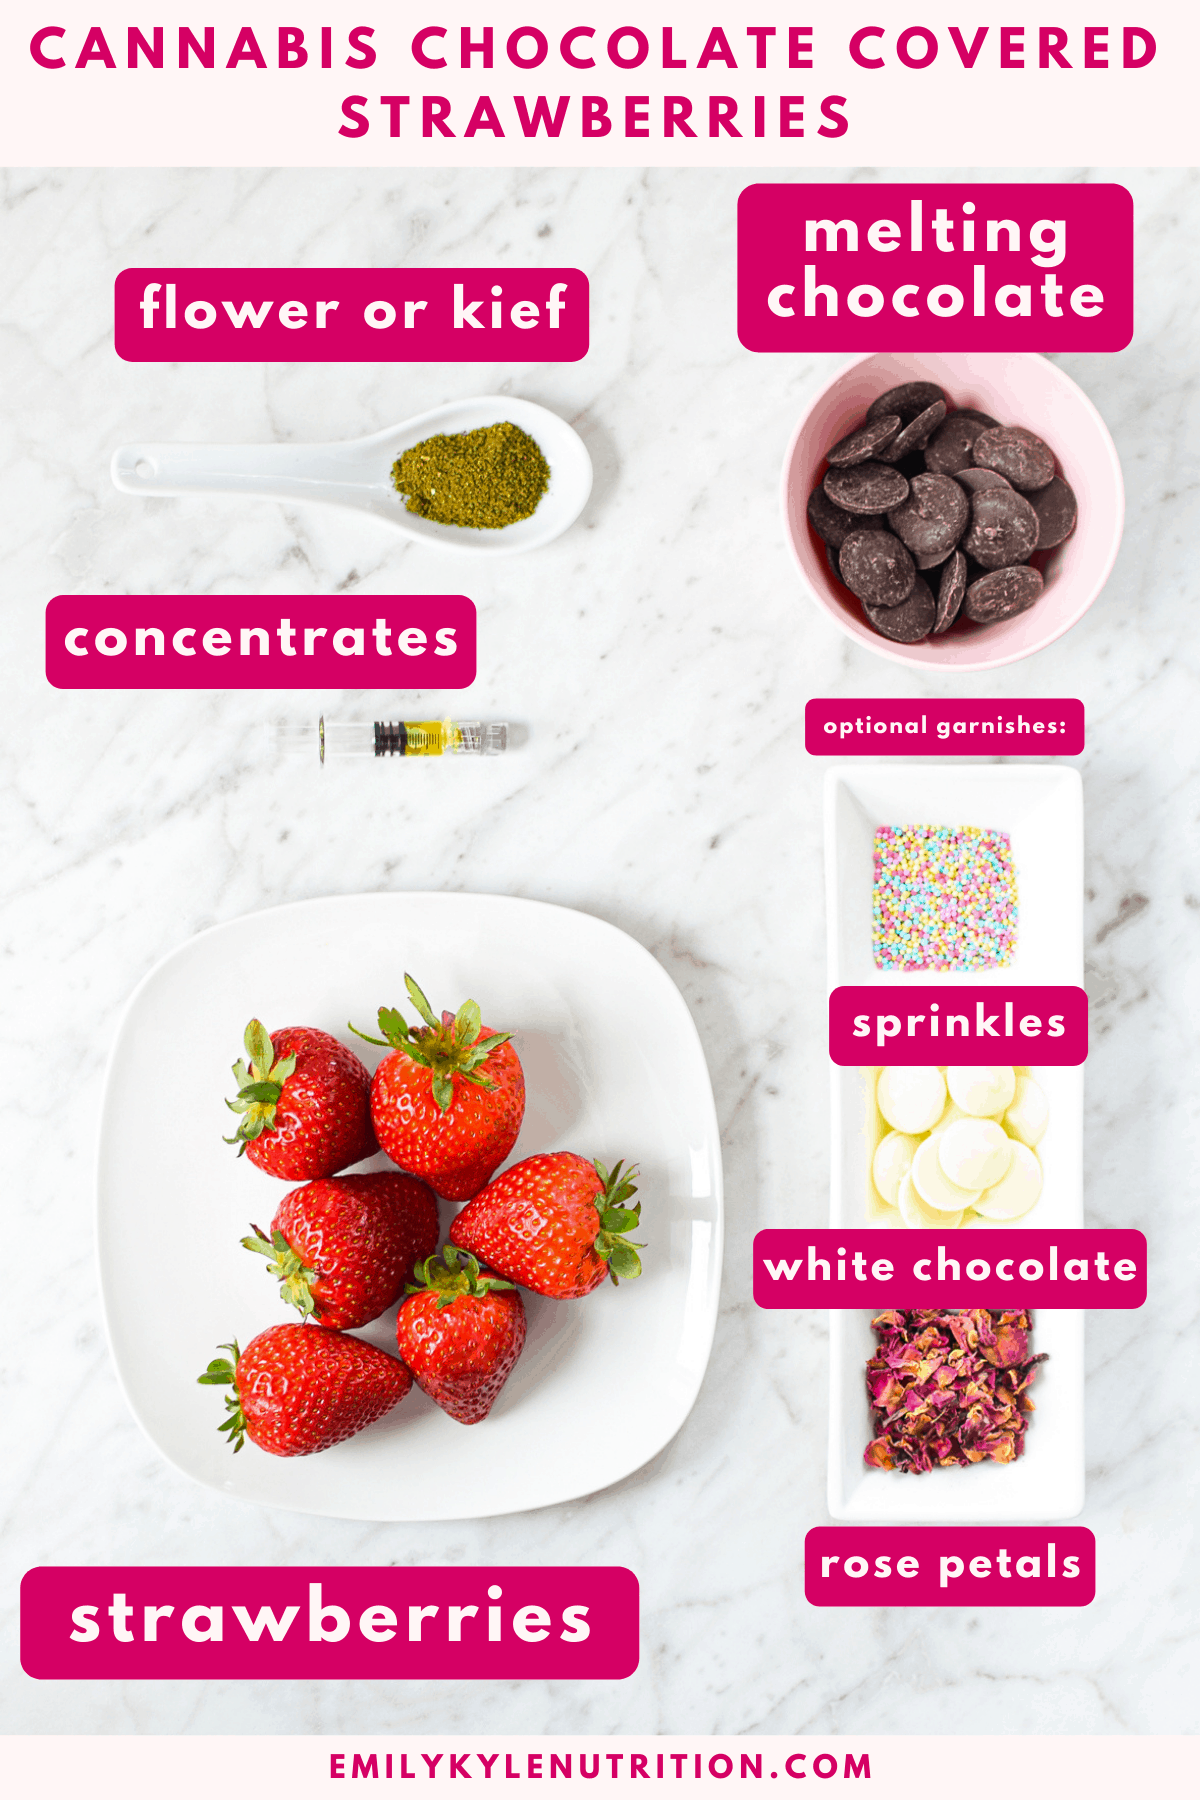 A white countertop with all of the ingredients needed to make cannabis chocolate covered strawberries including strawberries, chocolate, cannabis, cannabis concentrates, melting chocolates, sprinkles and rose petals